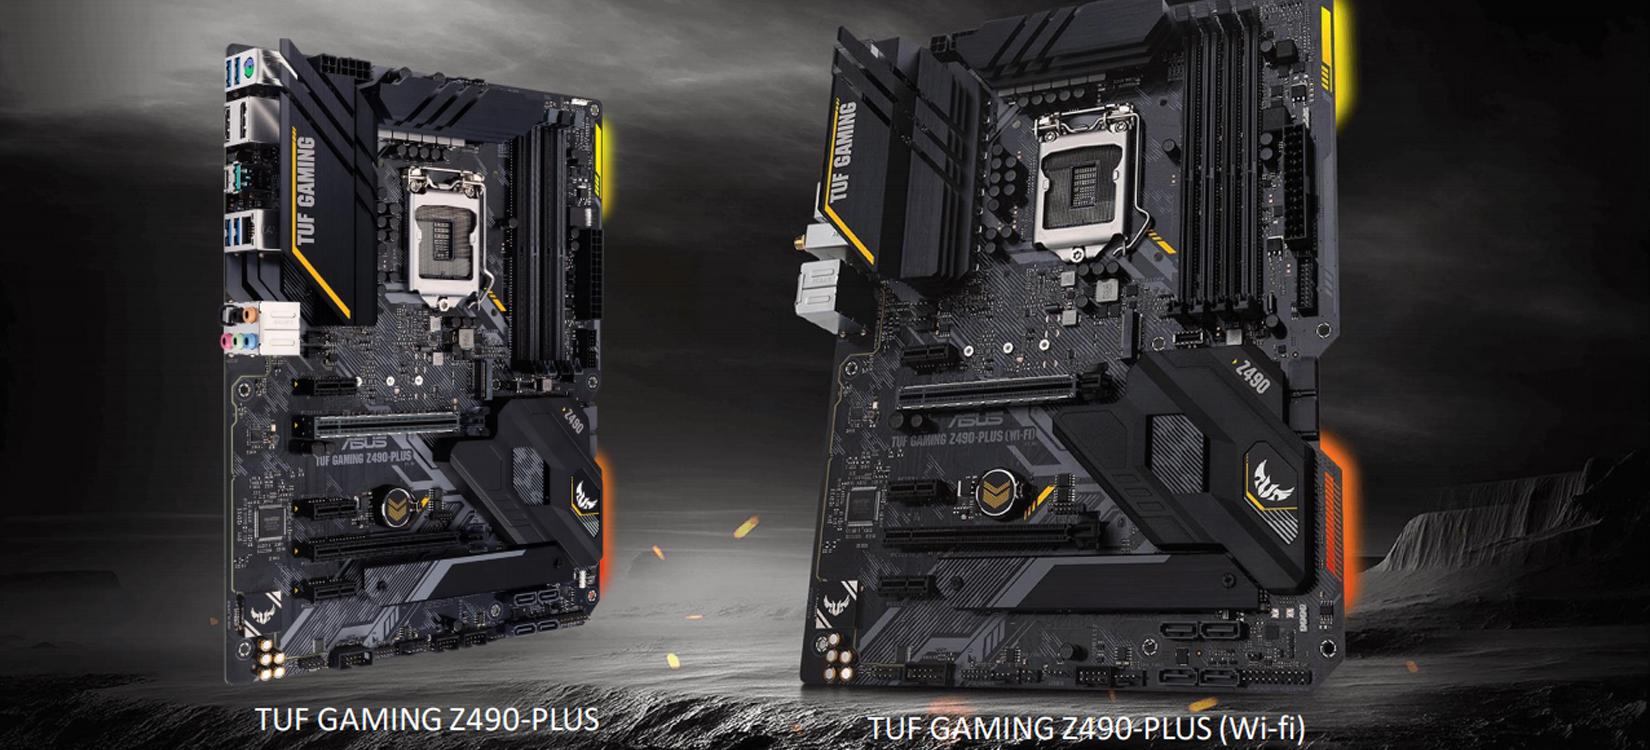 Mainboard ASUS TUF GAMING Z490-PLUS giá tốt